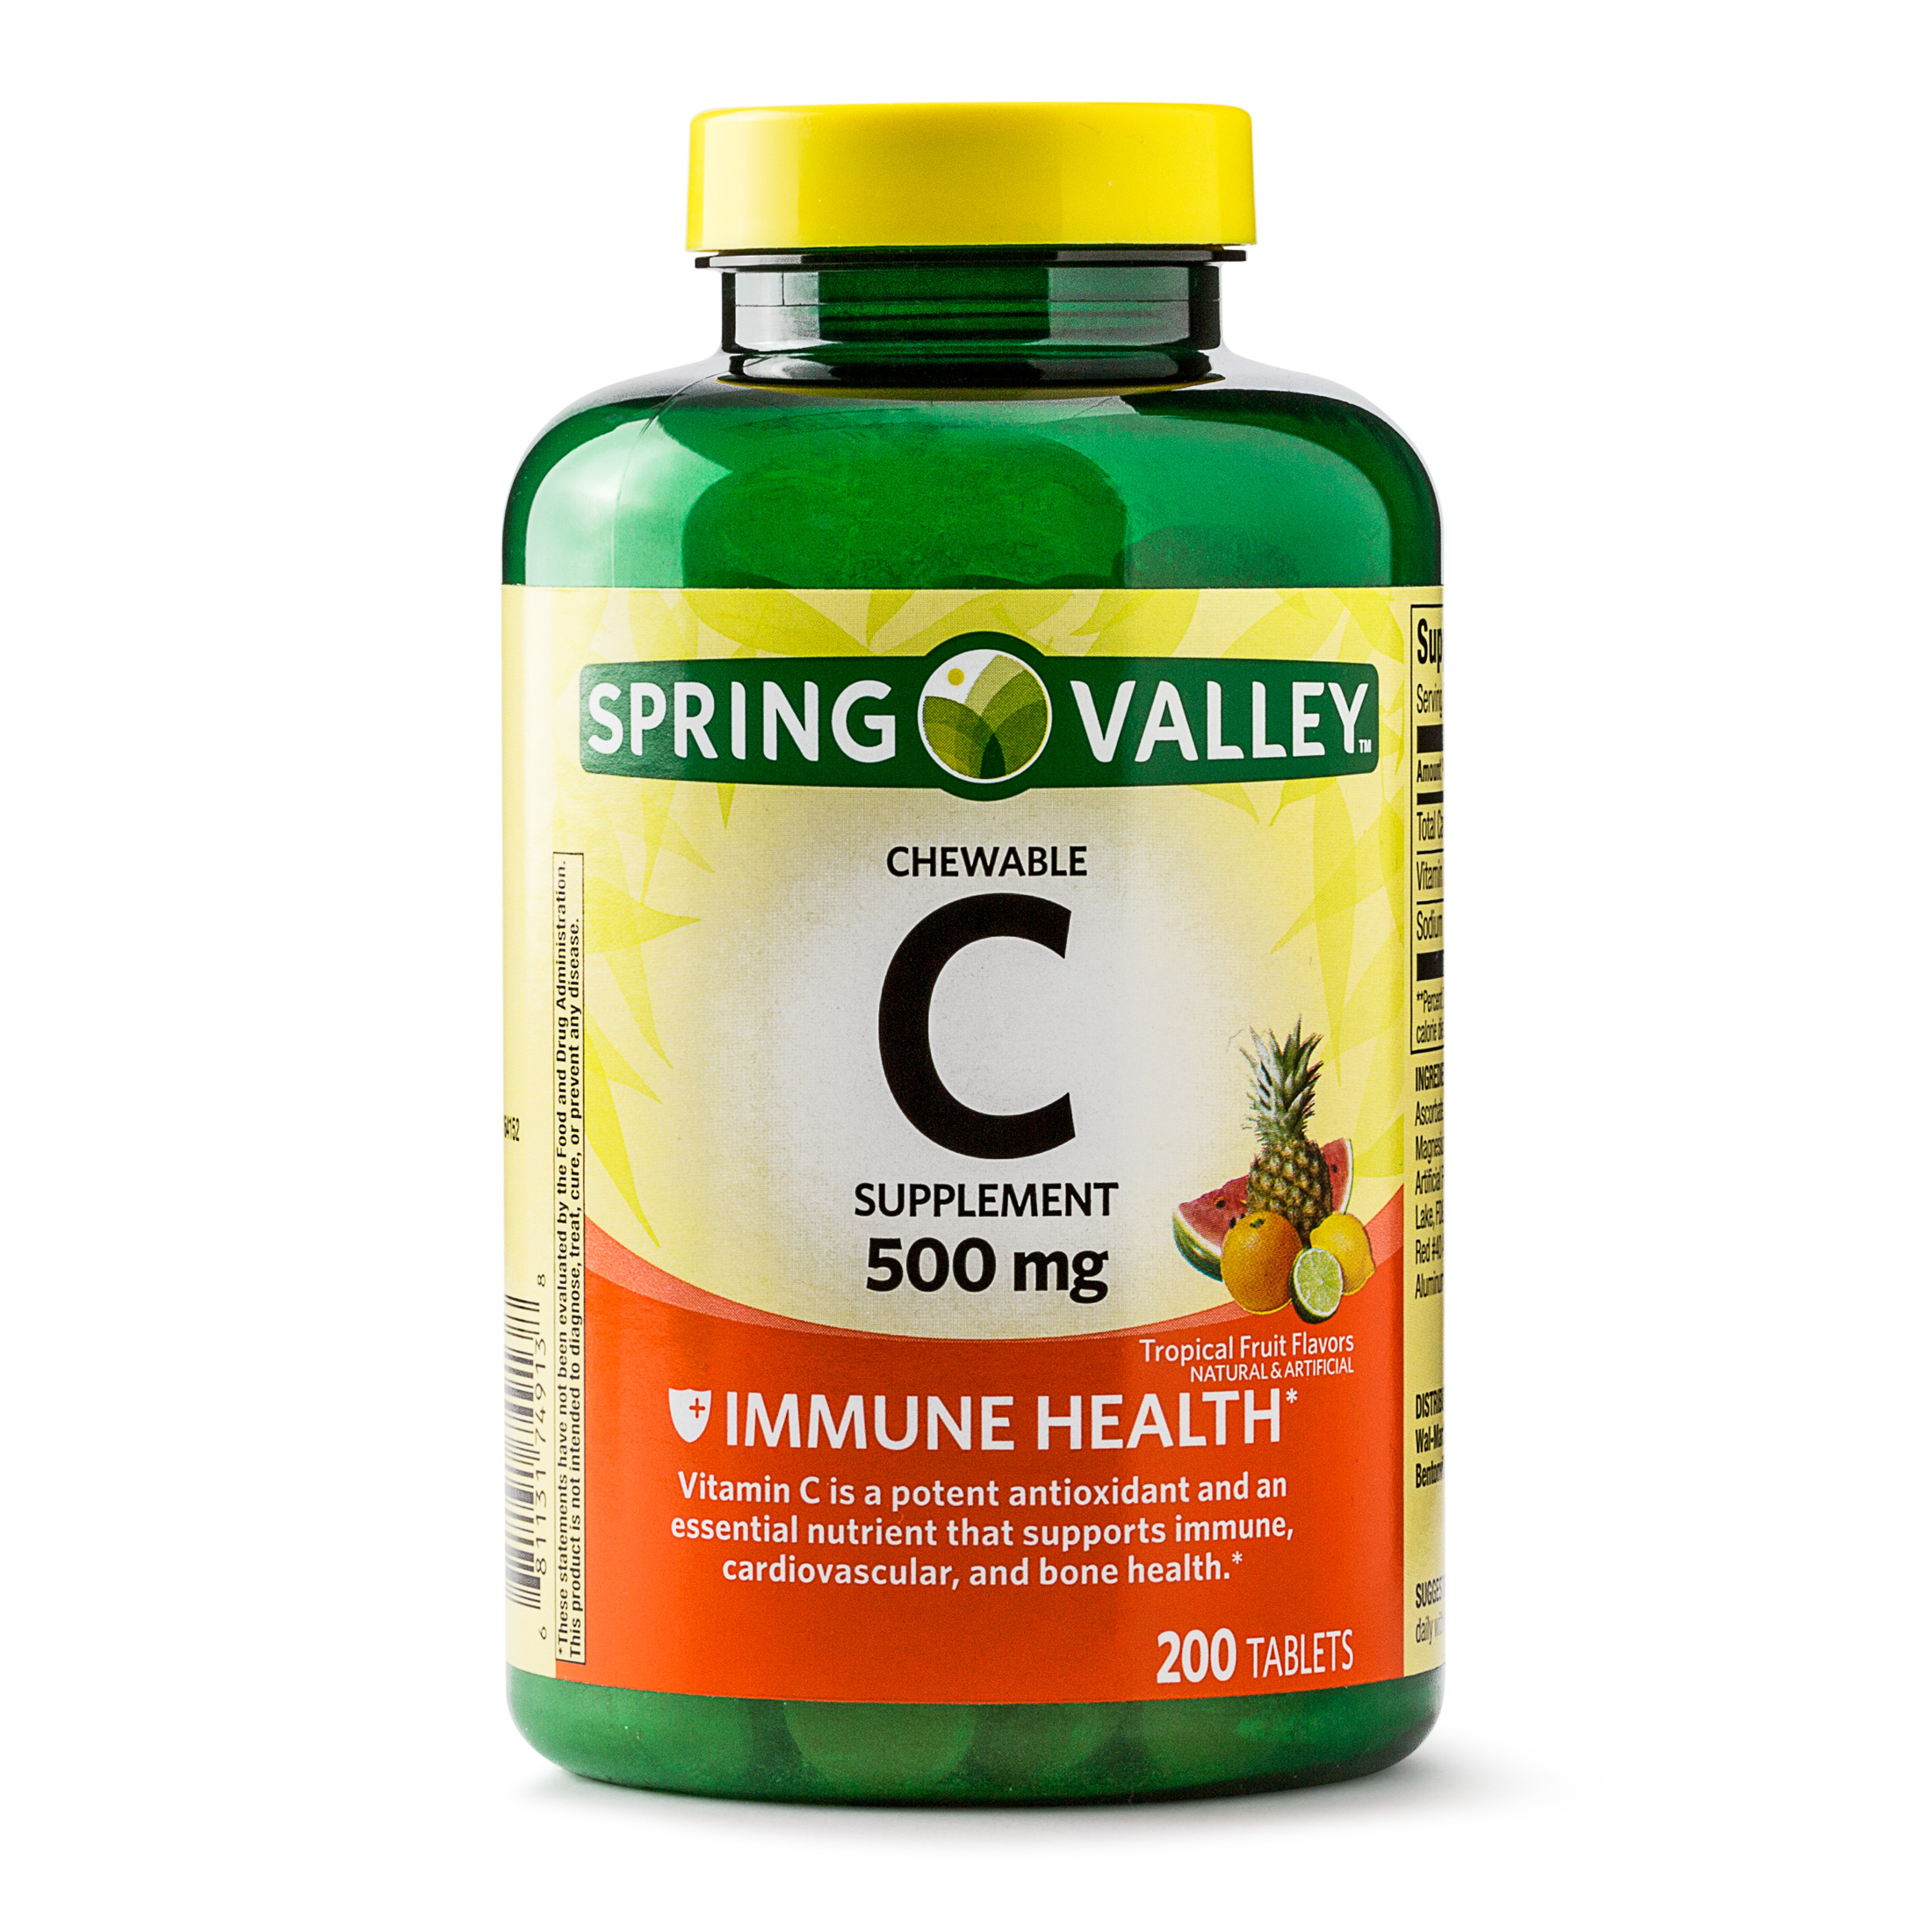 Spring Valley Vitamin C Chewable Fruit Tablets, 500 mg, 200 Ct